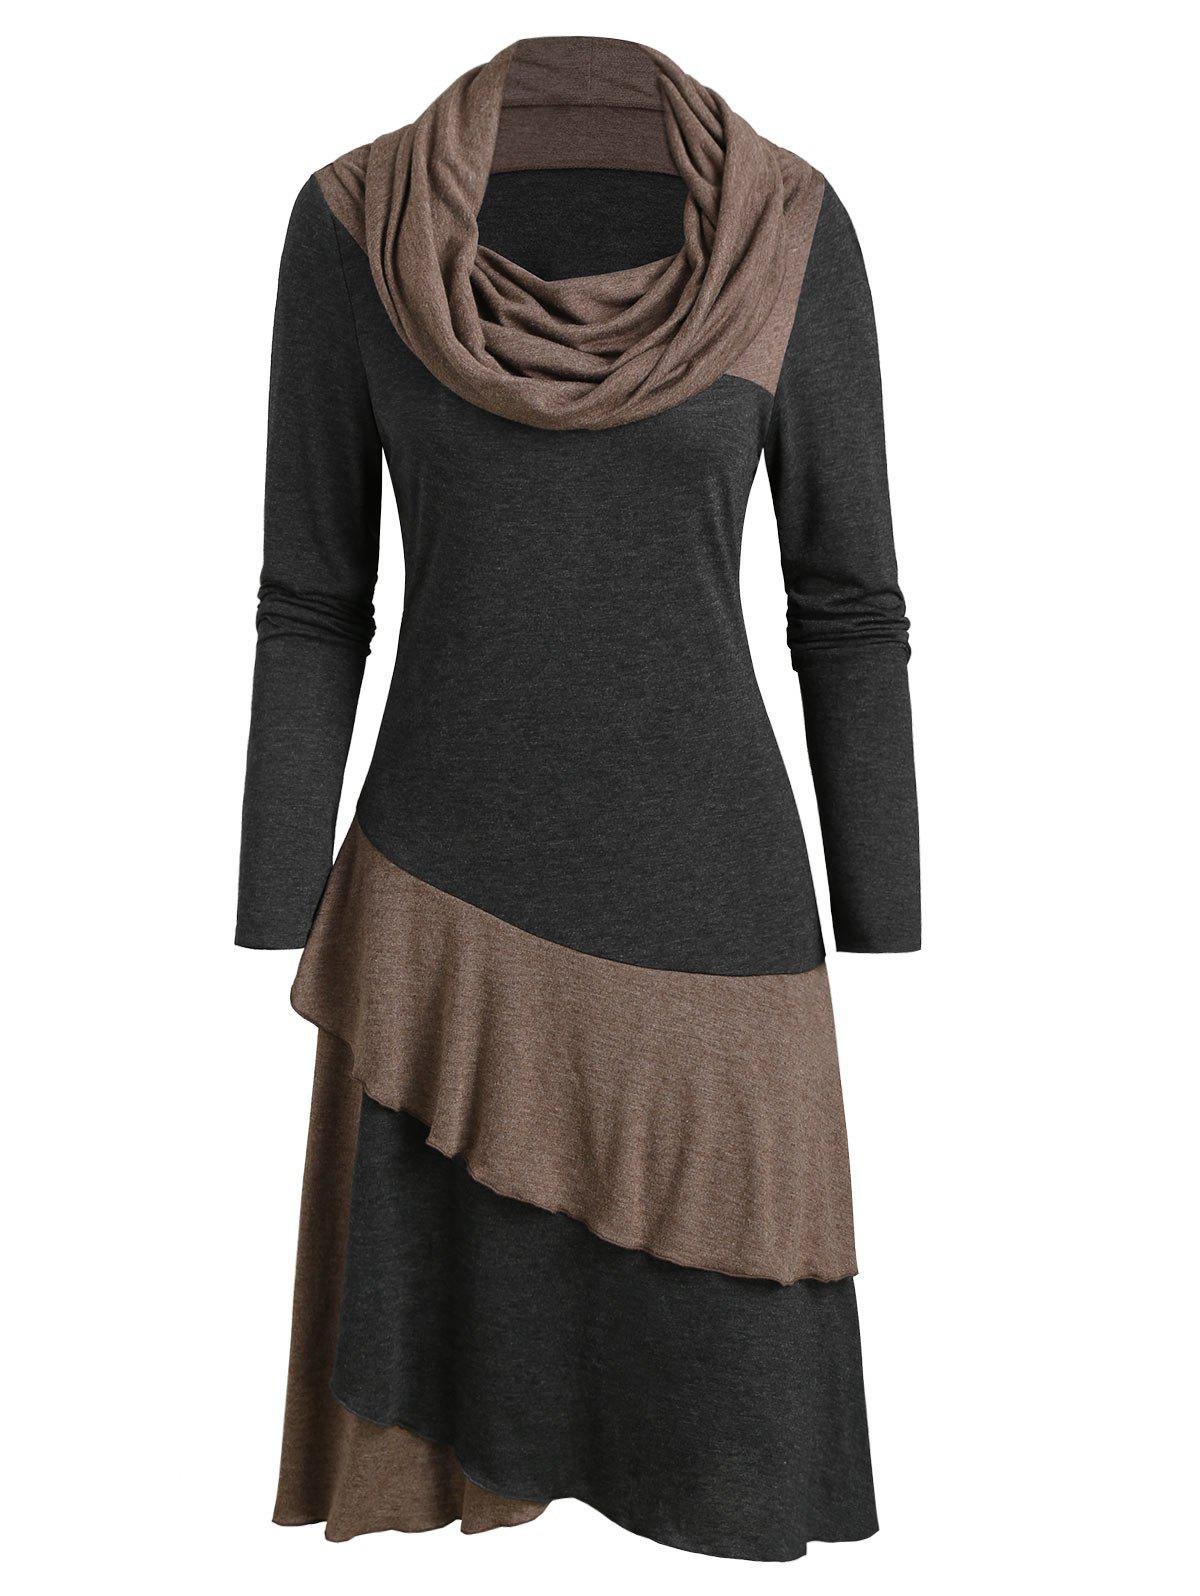 Store Cowl Neck Long Sleeve Contrast Heathered Layered Dress